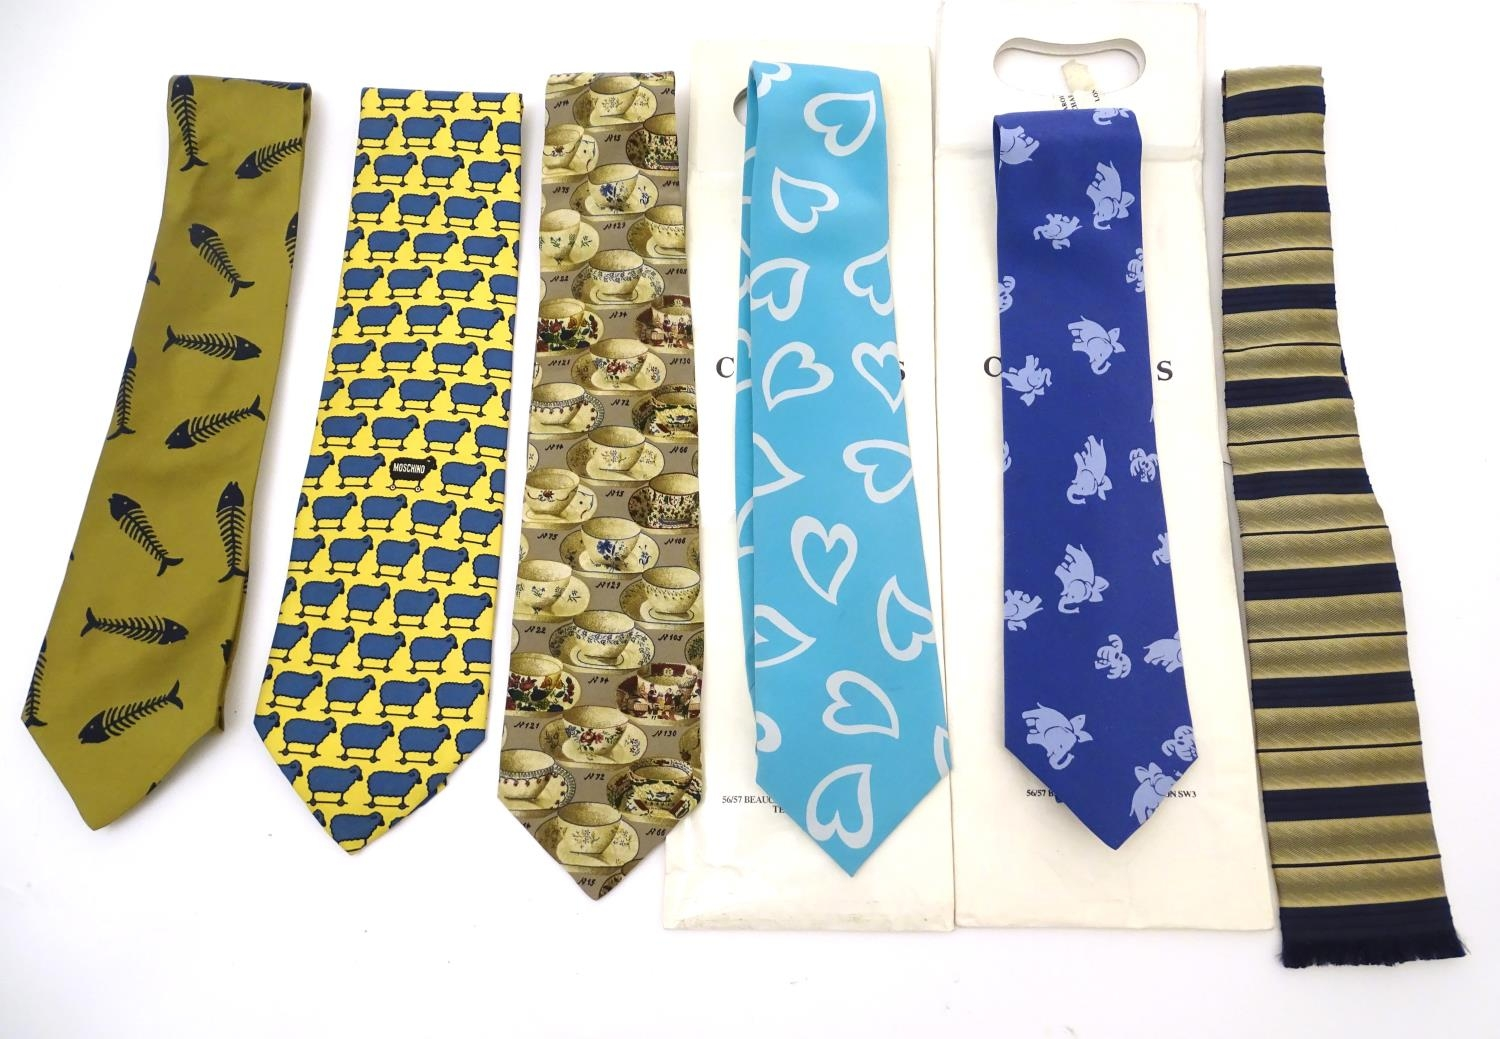 Vintage clothing/ fashion: 6 silk ties in various colours and patterns by Yves Saint Laurent, Nicole